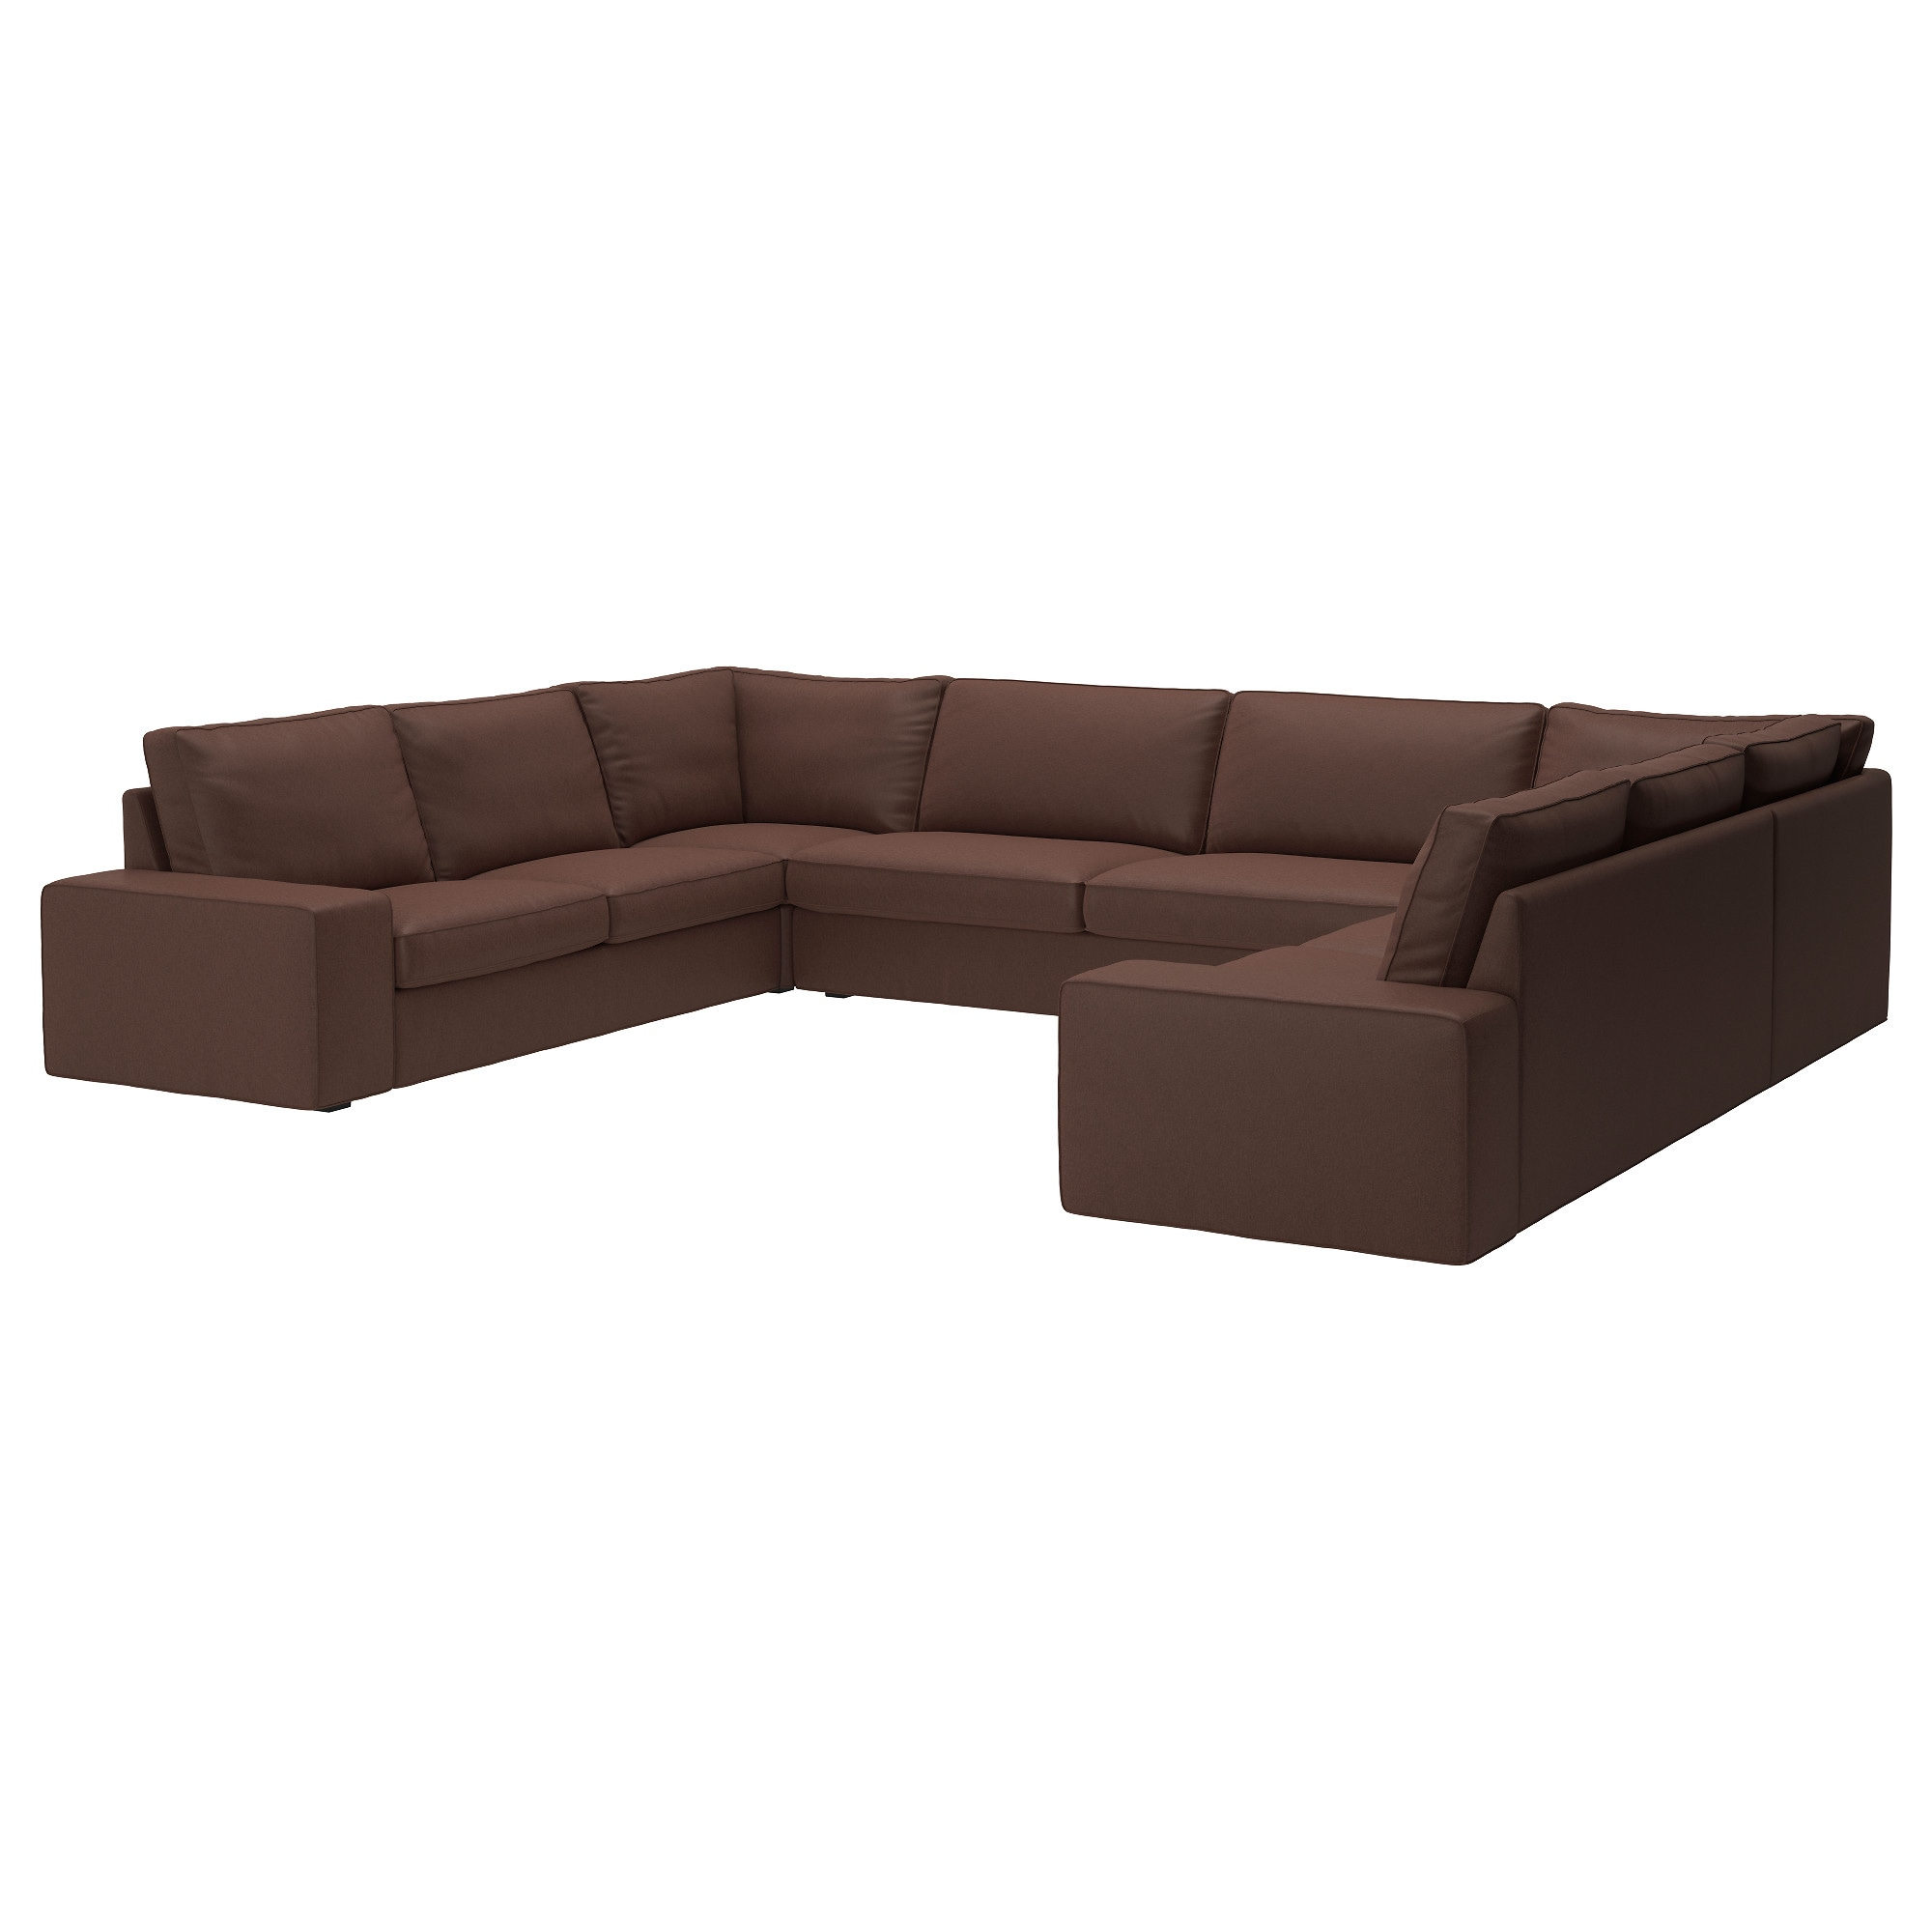 KIVIK U shaped sofa 7 seat Hillared beige IKEA